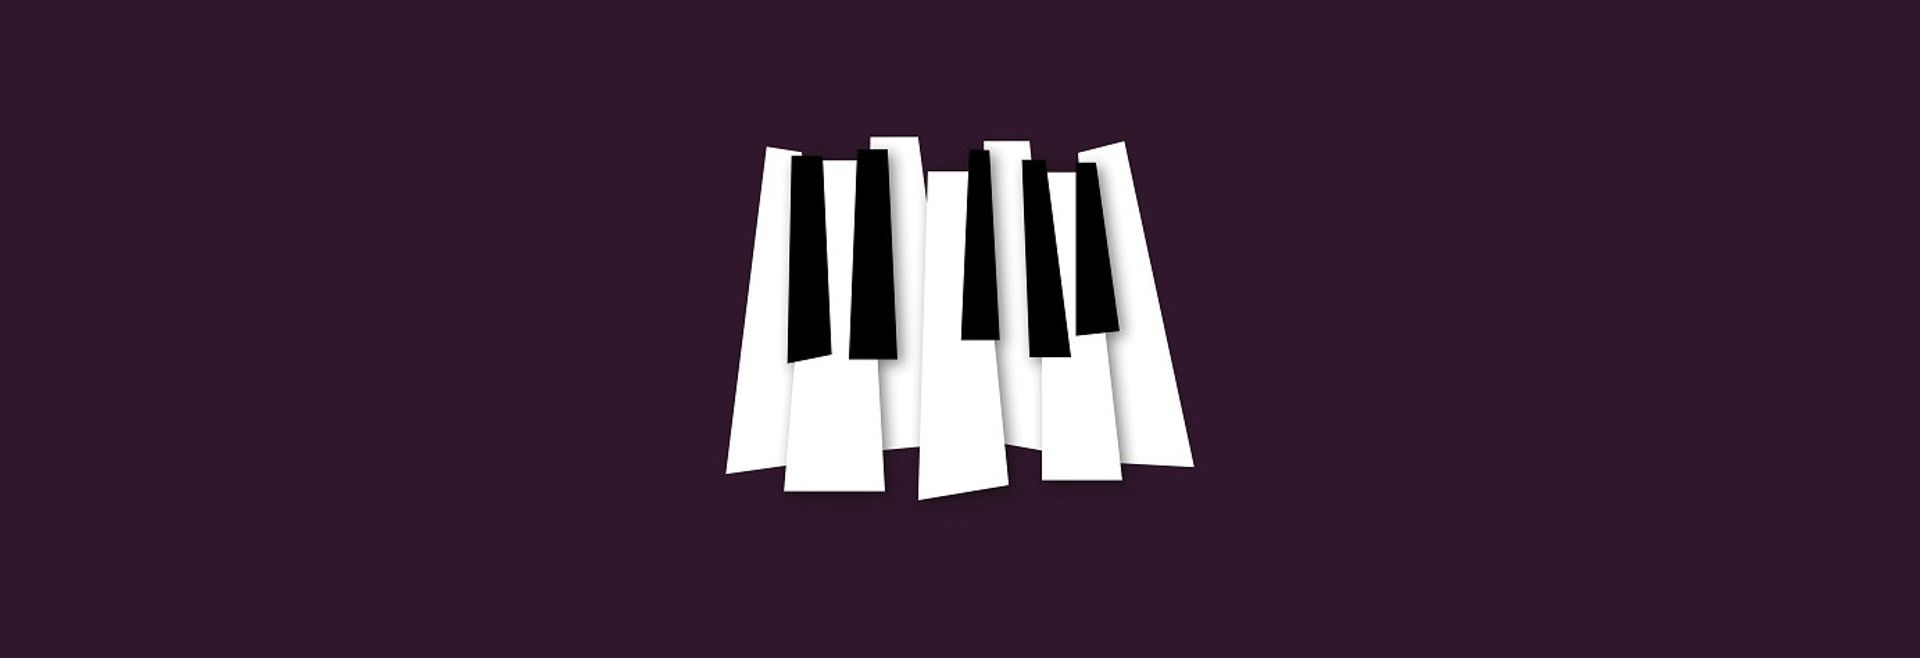 Piano Teeth Image to support Dueling Piano Event